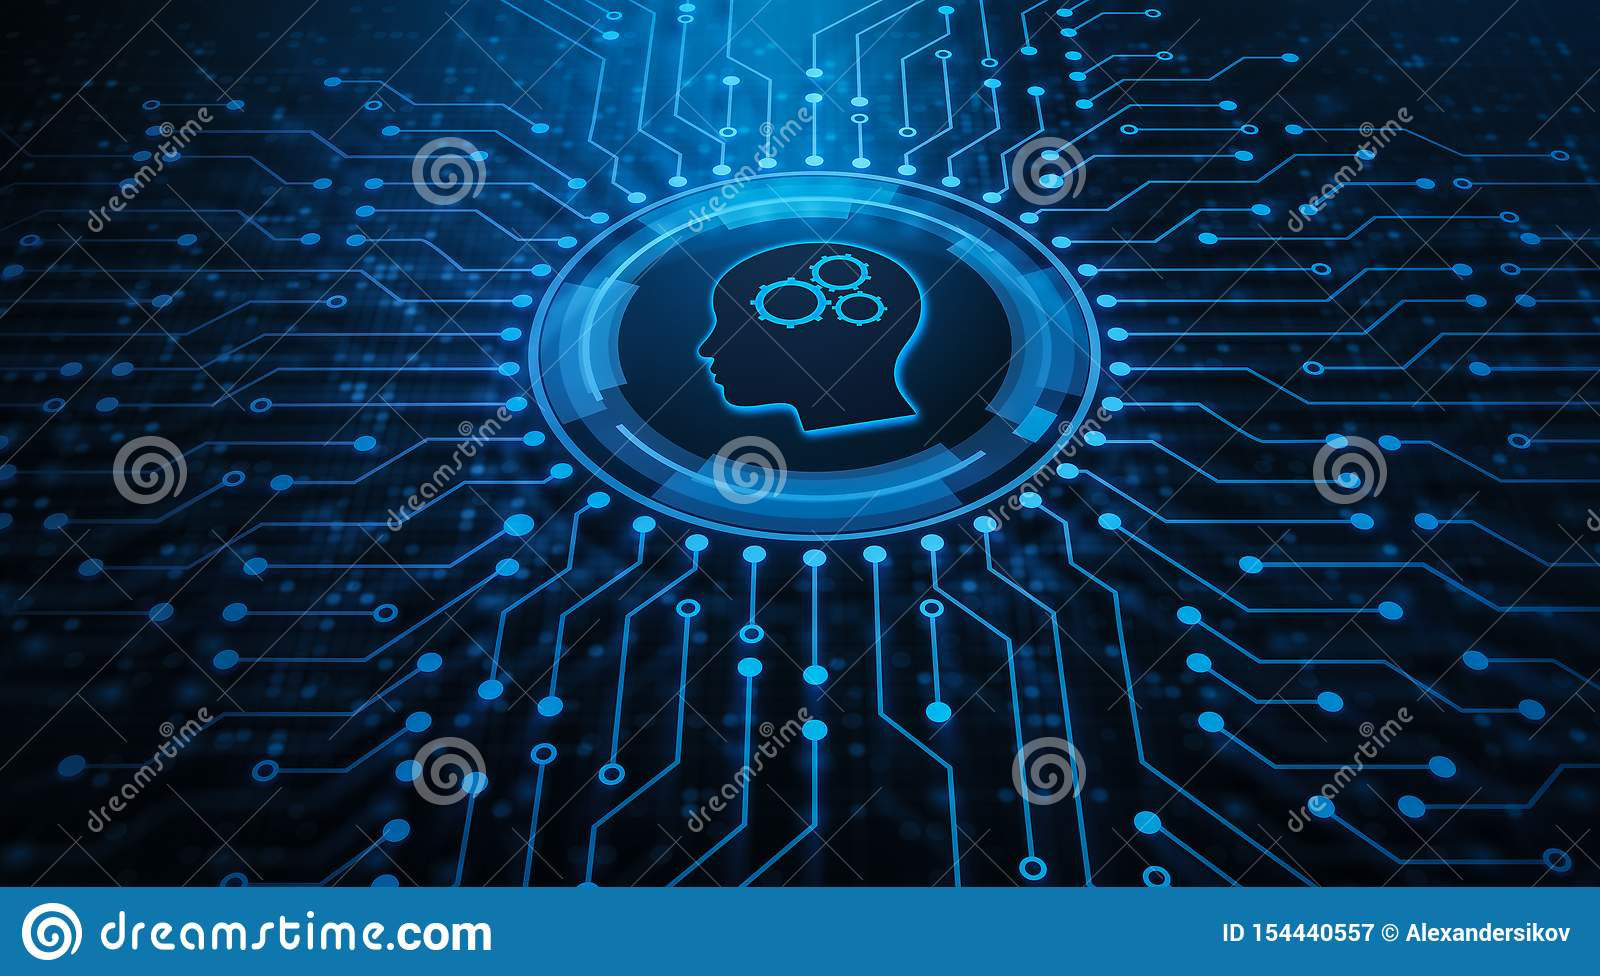 RPA Robotic process automation artificial intelligence technology